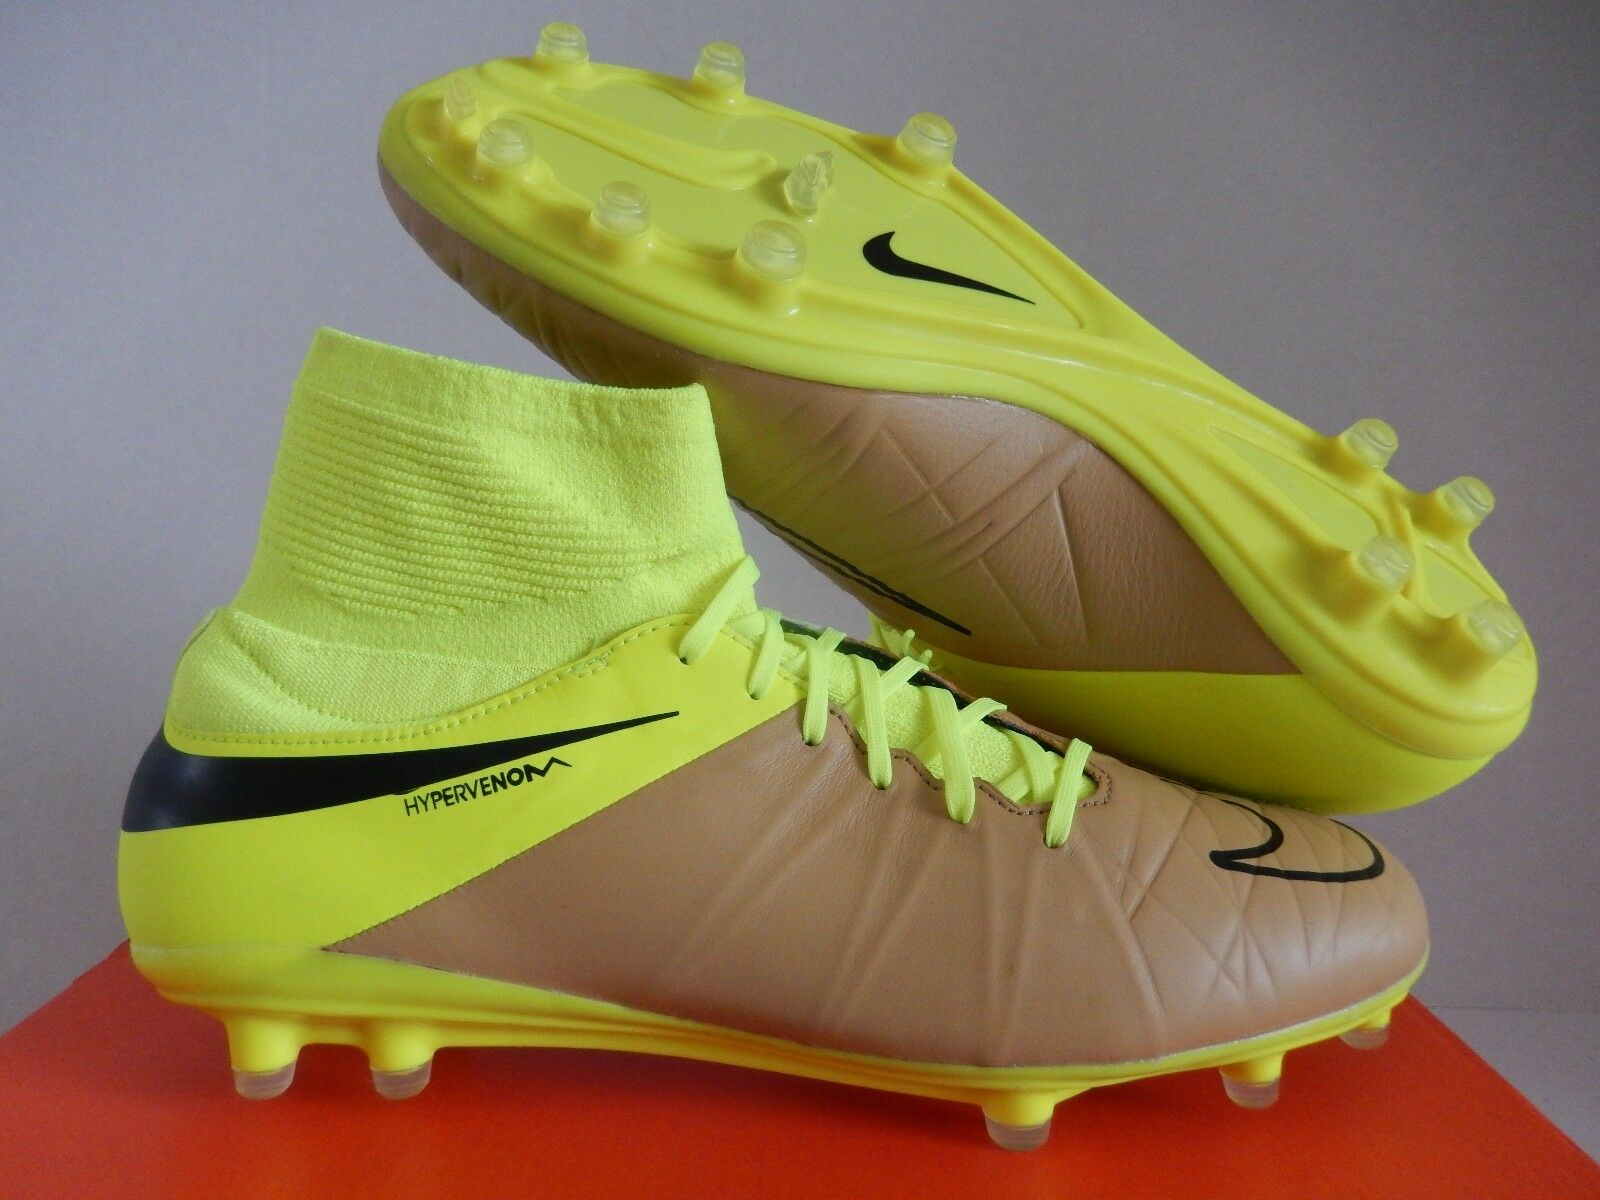 NIKE HYPERVENOM PHATAL II DF LTR LEATHER FG CANVAS-BLK-VOLT SZ 7.5 [747504-707]